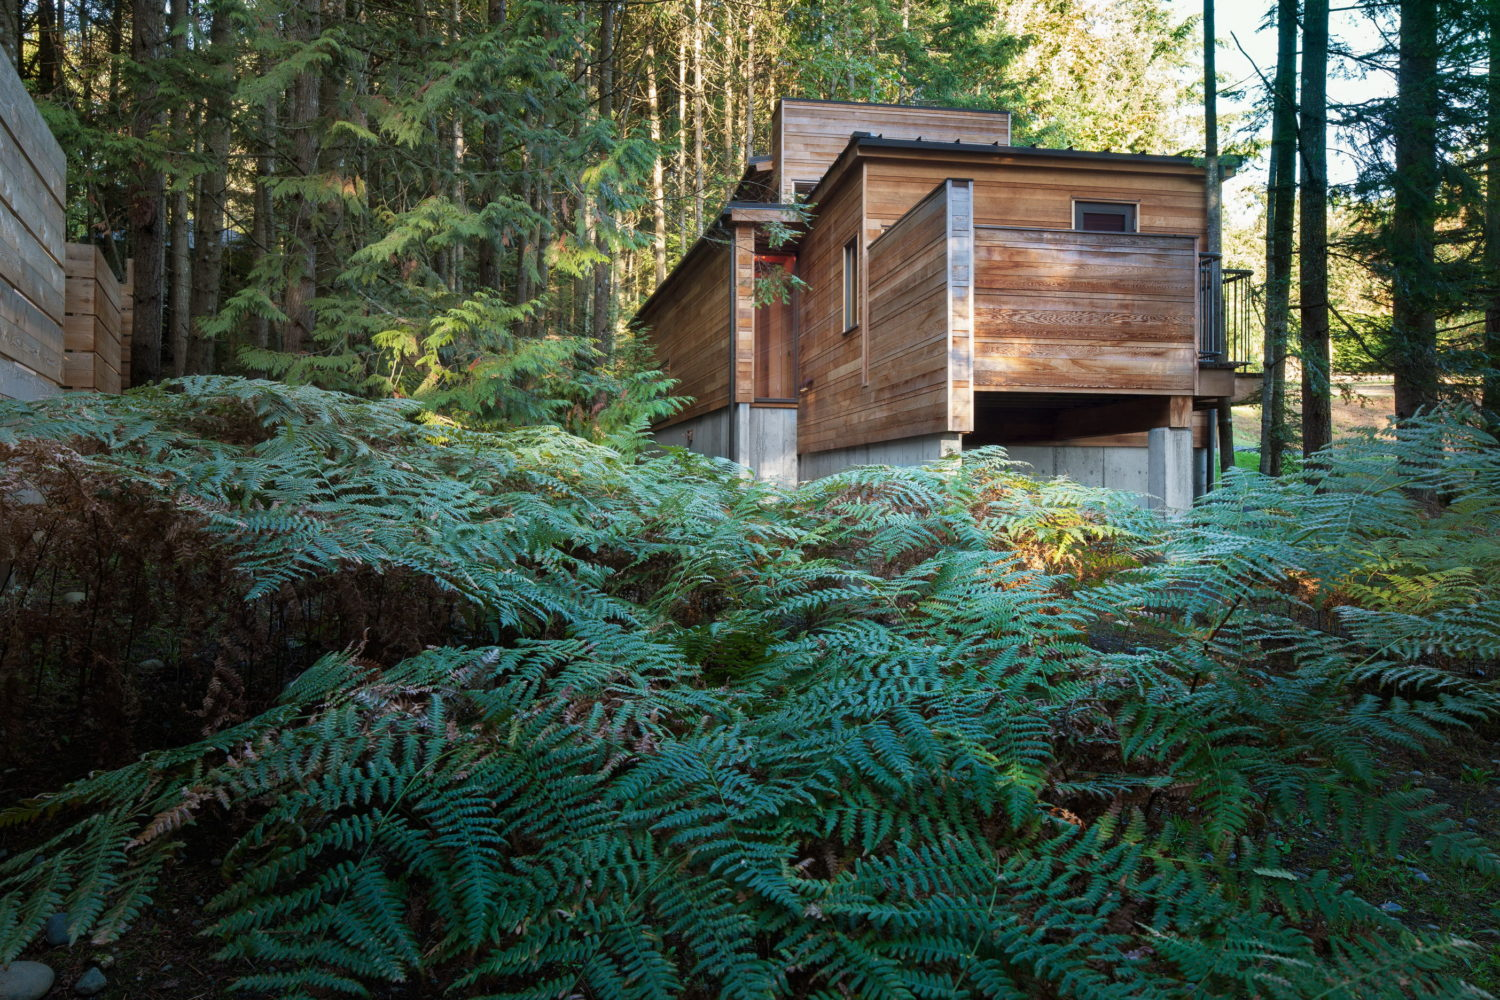 Rainforest Retreat | Small Dwelling by AGATHOM Co.